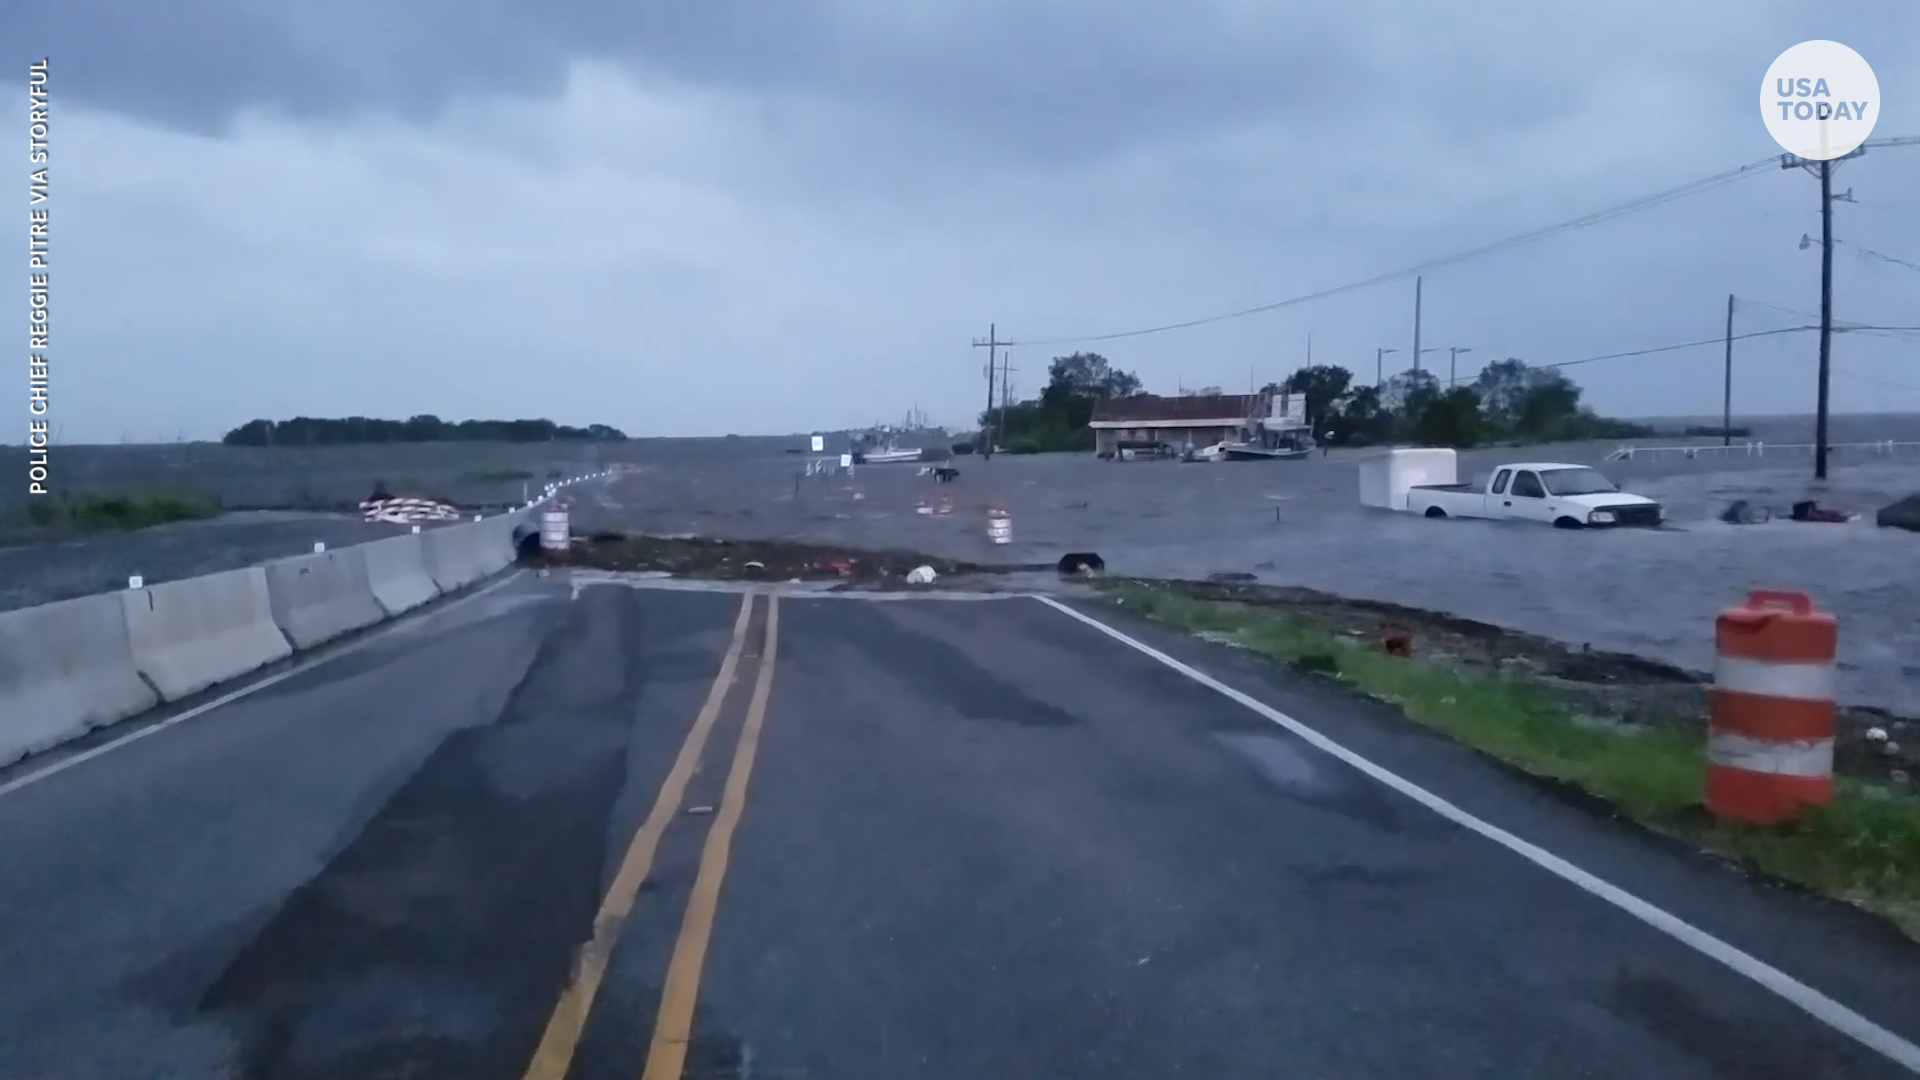 Hurricane Barry floods road in Louisiana